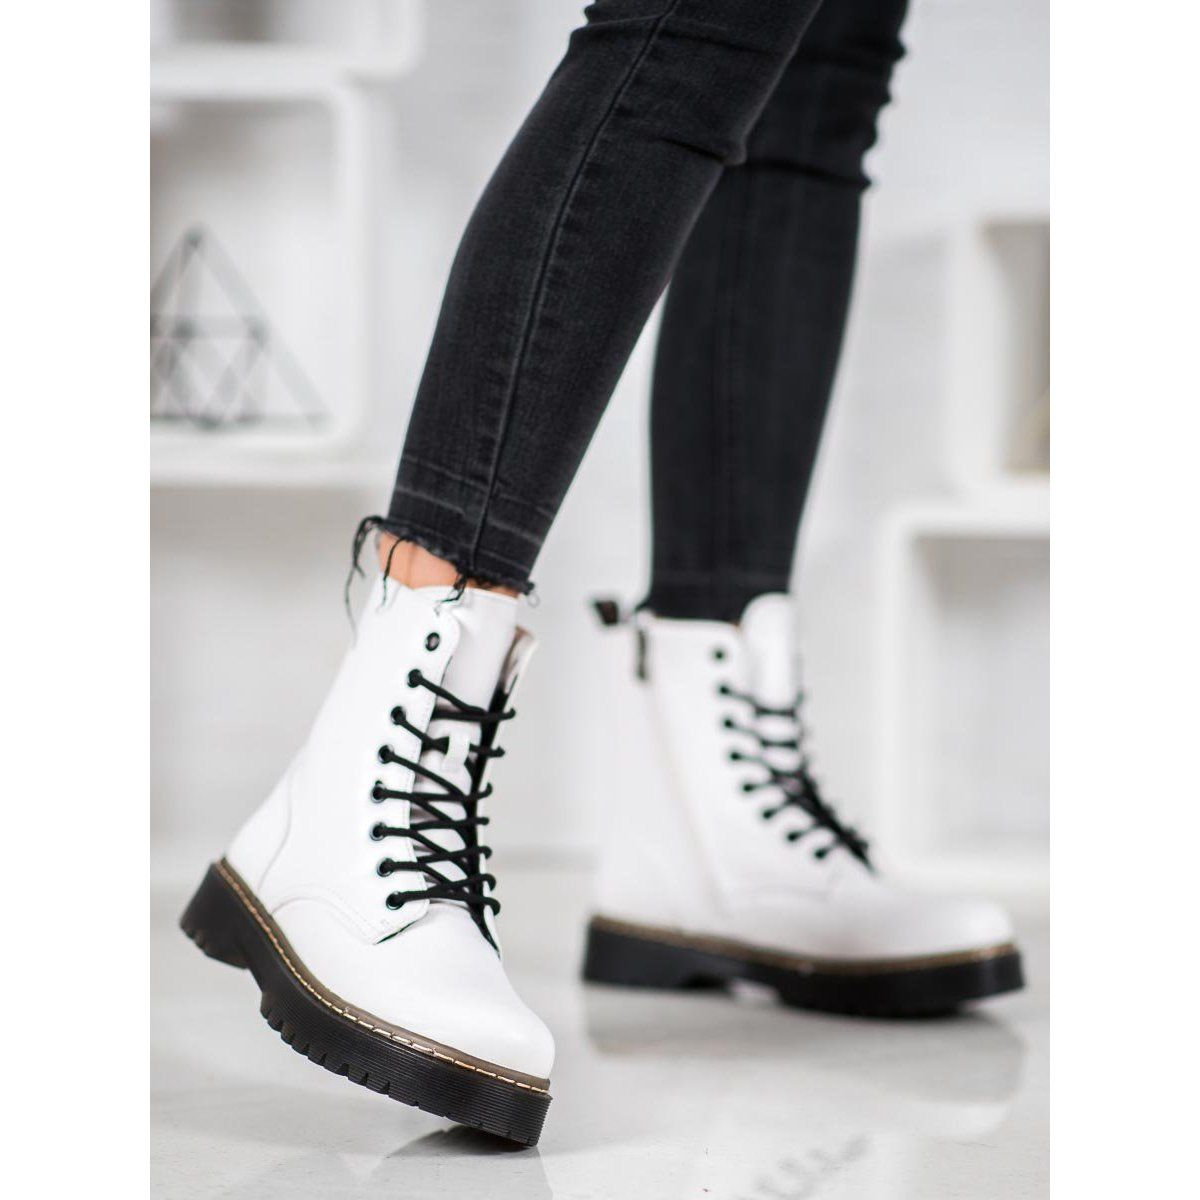 Shelovet White Workers Boot Shoes Women Boots Wearables Fashion